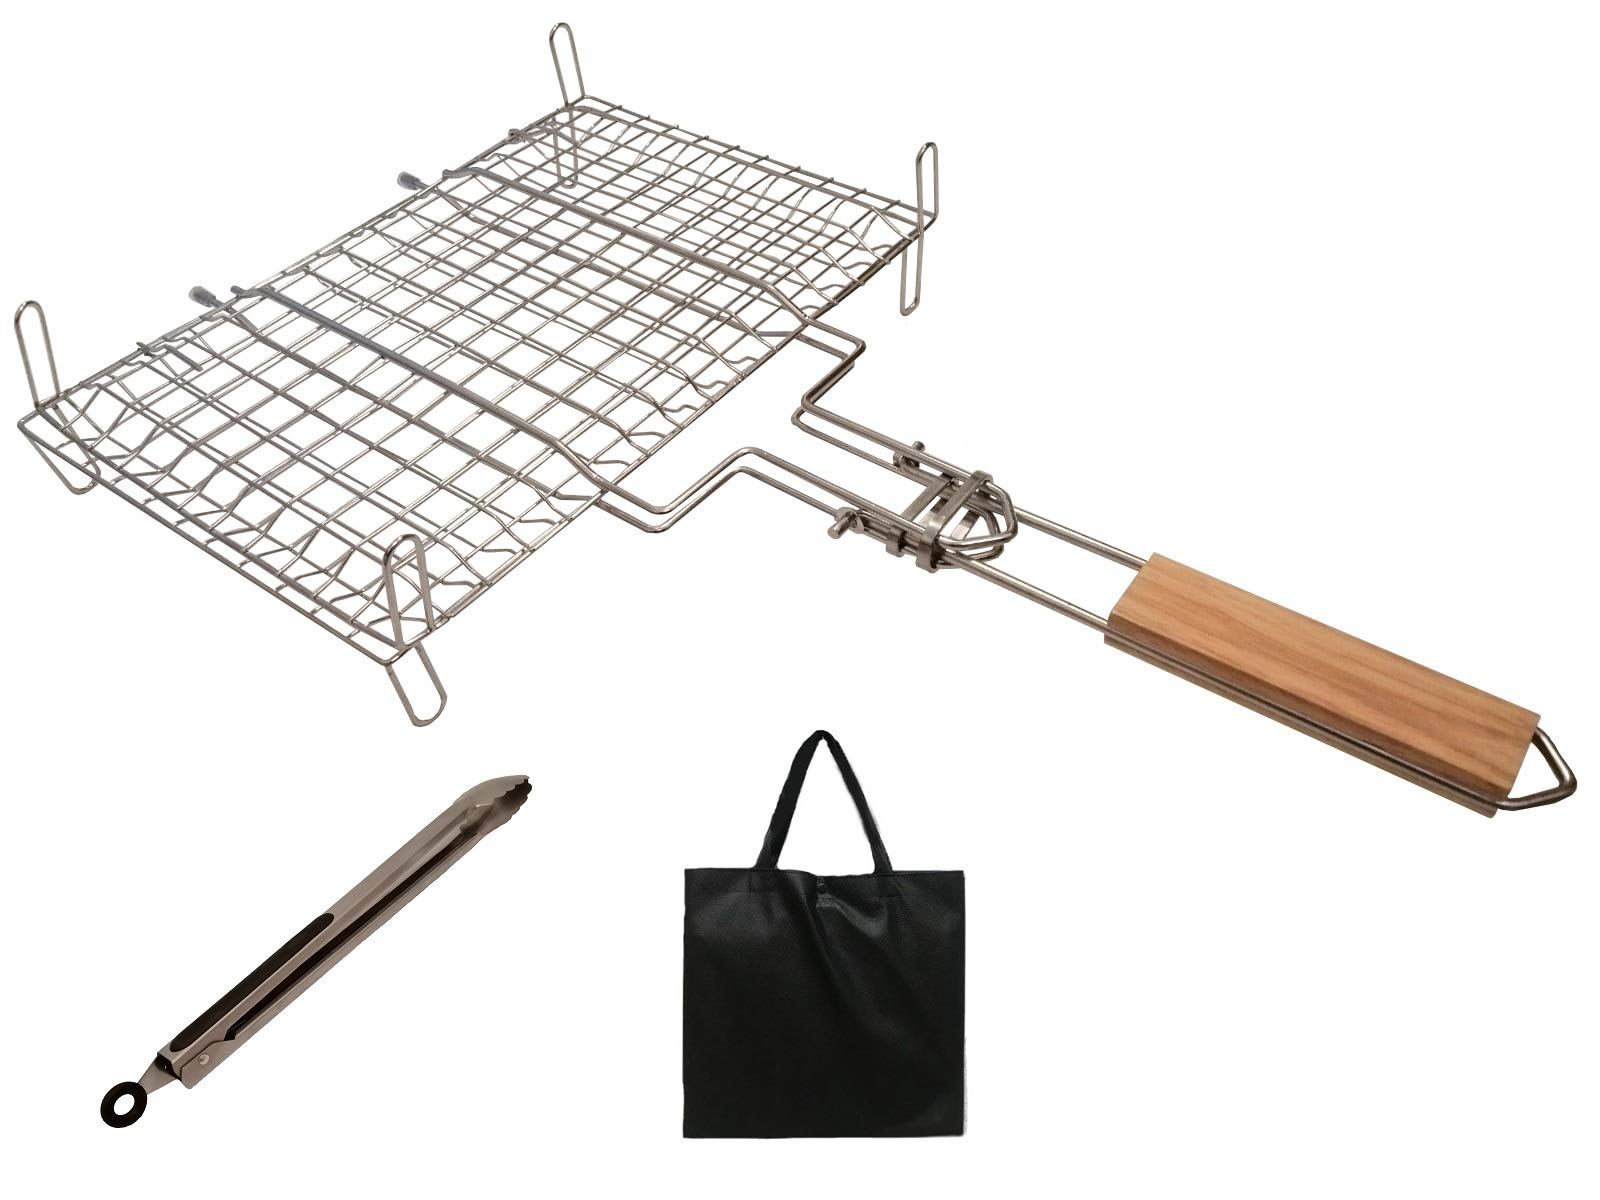 Grill Basket for BBQ, Camping, Charcoal Grill Basket with Stands, Resistant and full made of Stainless Steel for Grilling Fish ,Vegetables, Steak, Shrimp, Chops and more. Equipped with Barbecue Tongs.